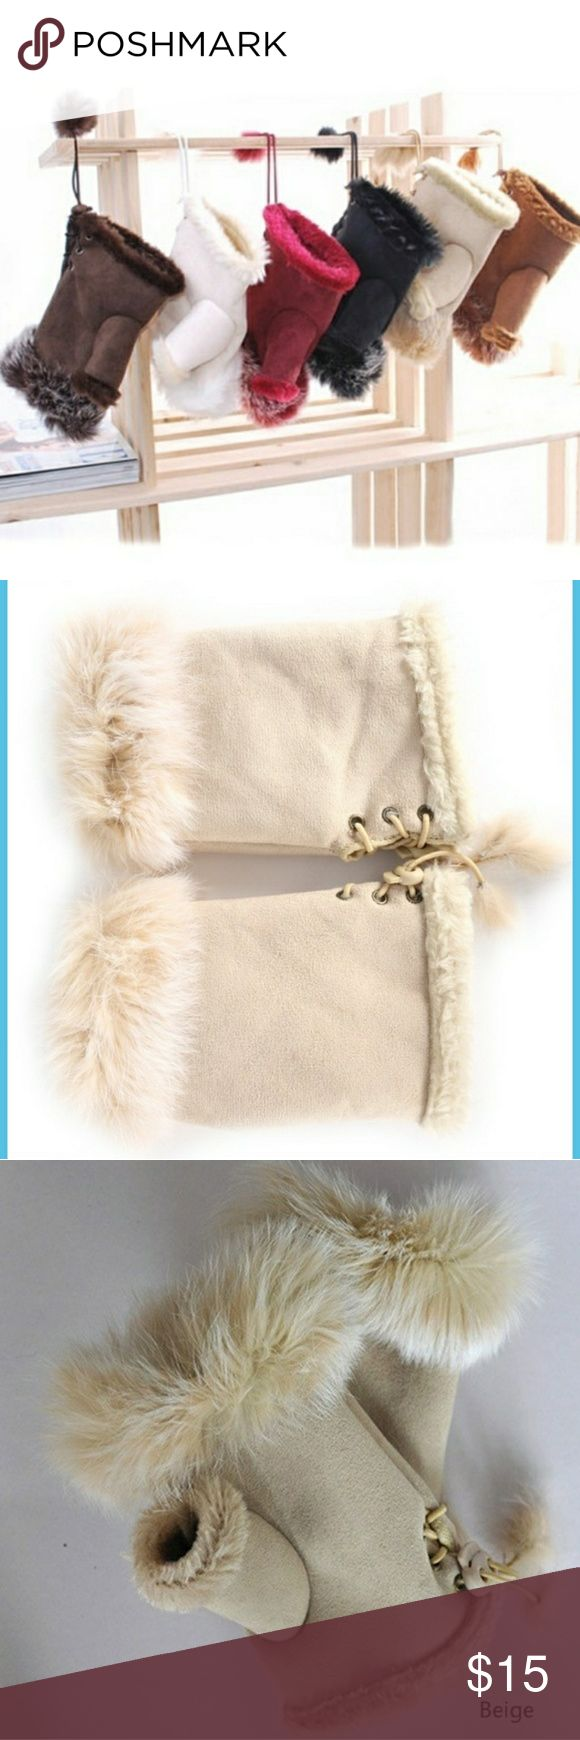 Beige Faux Fur Mittens Warm and soft fingless mittens. Adjustable on wrist. Super trendy and chic. Accessories Gloves & Mittens